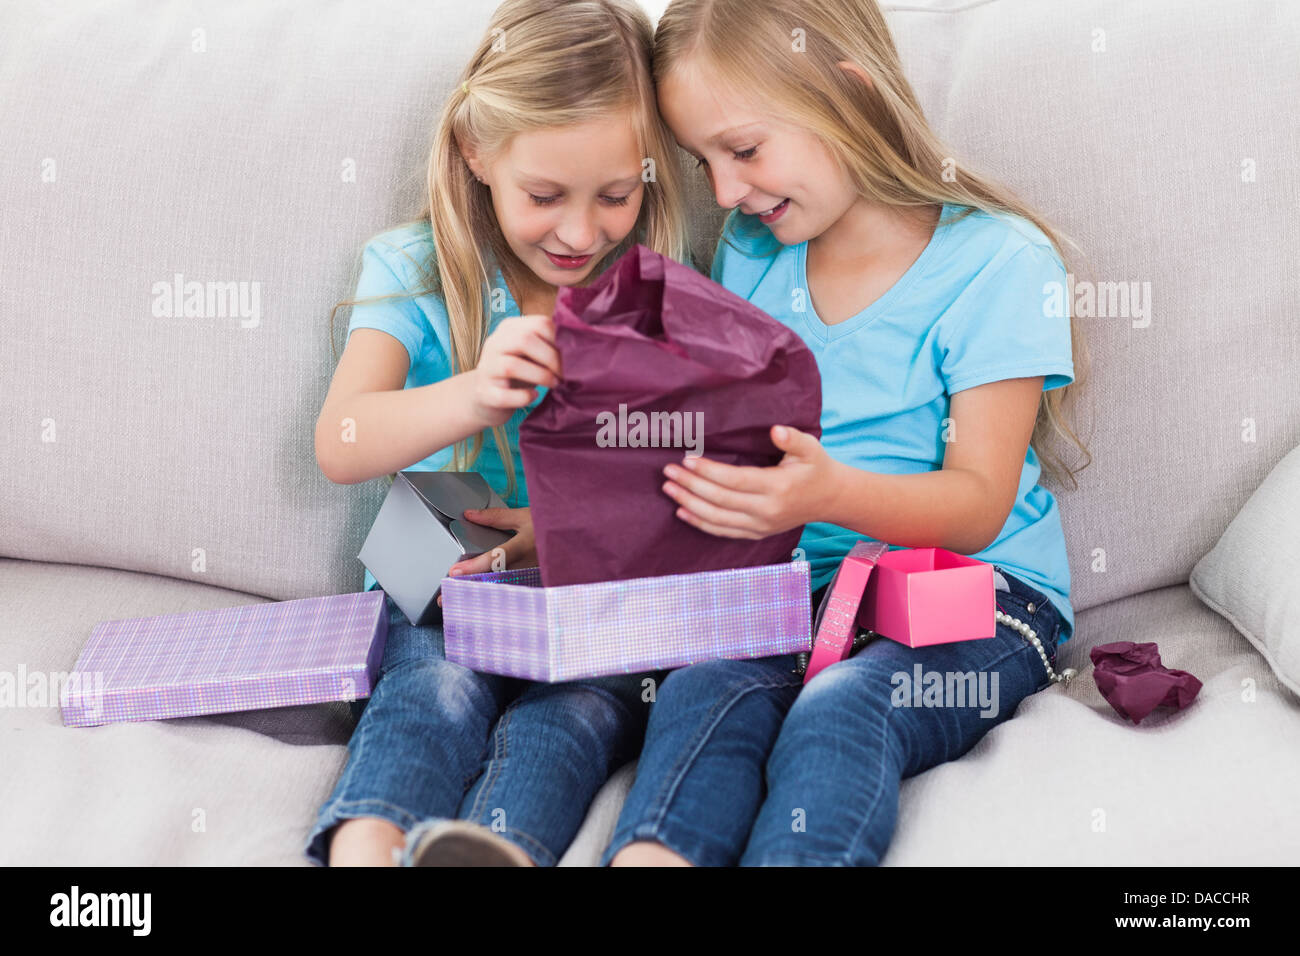 Young Twins Unwrapping Birthday Gift Sitting On A Couch